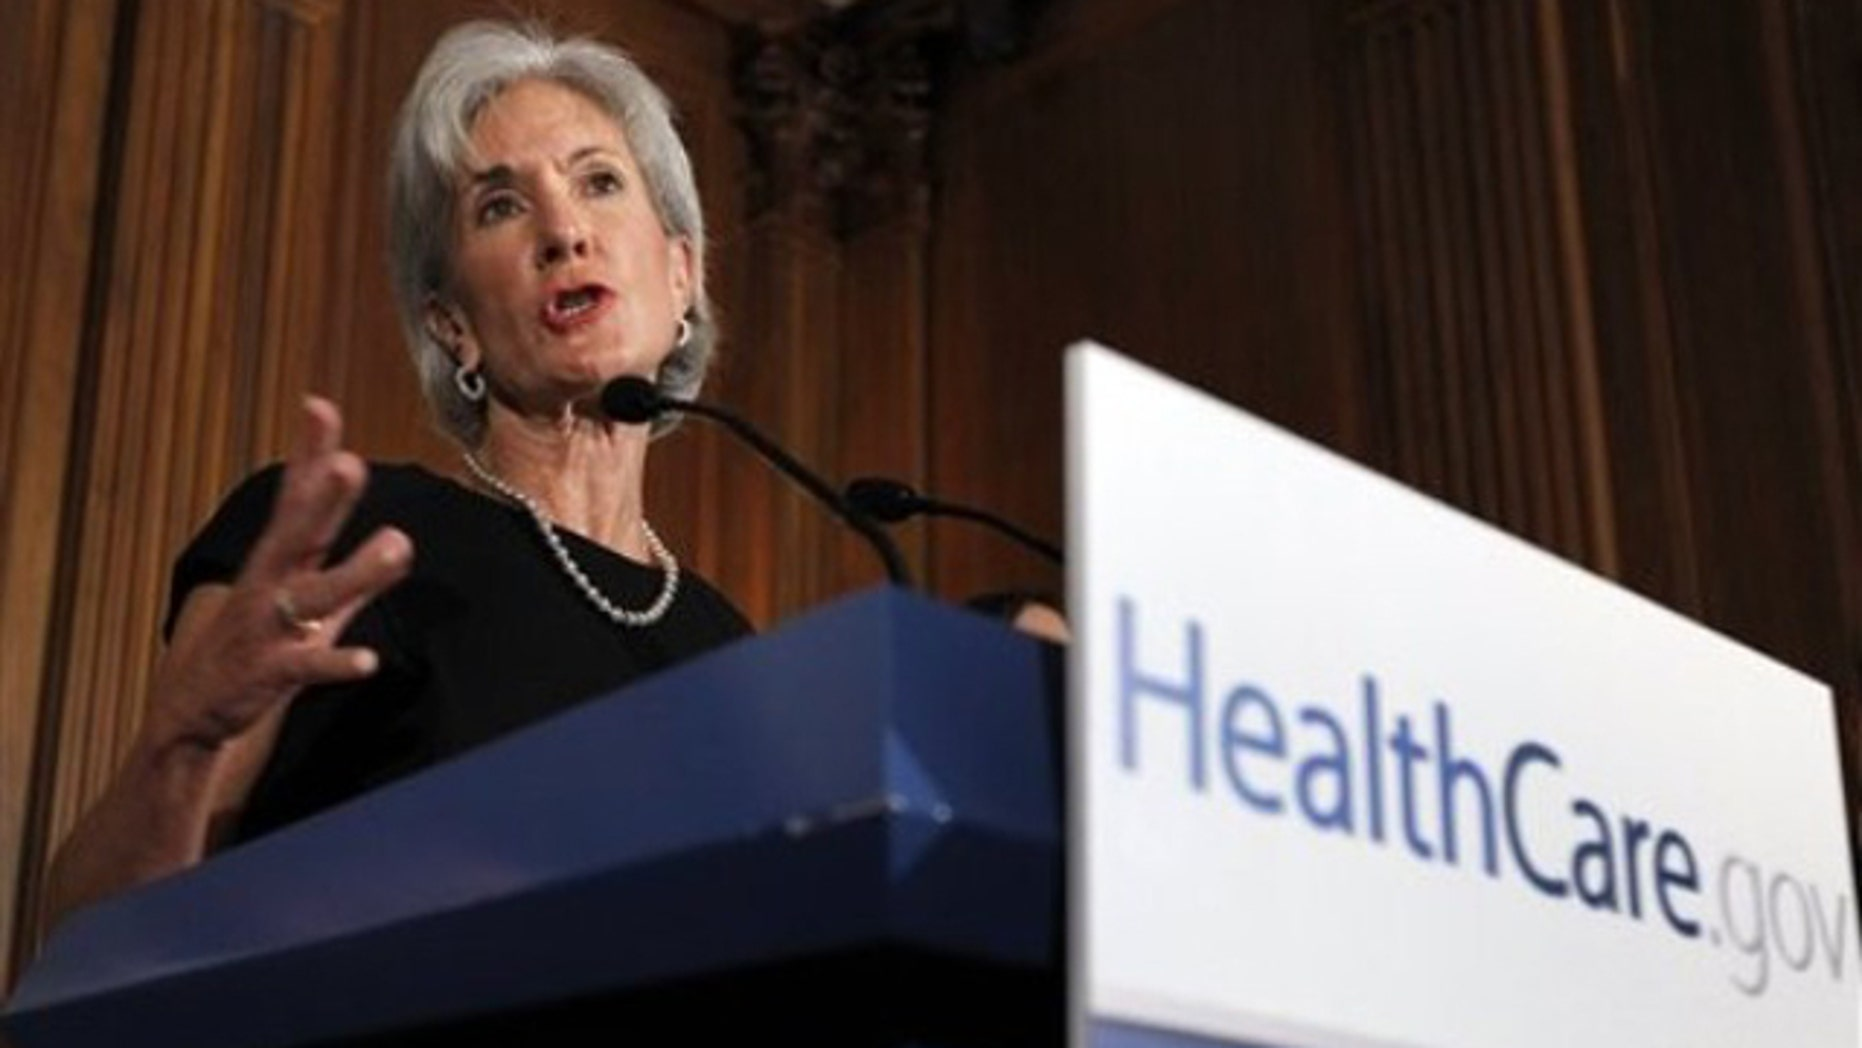 FILE: Health and Human Services Secretary Kathleen Sebelius gestures during a news conference on Capitol Hill Sept. 23, 2010.